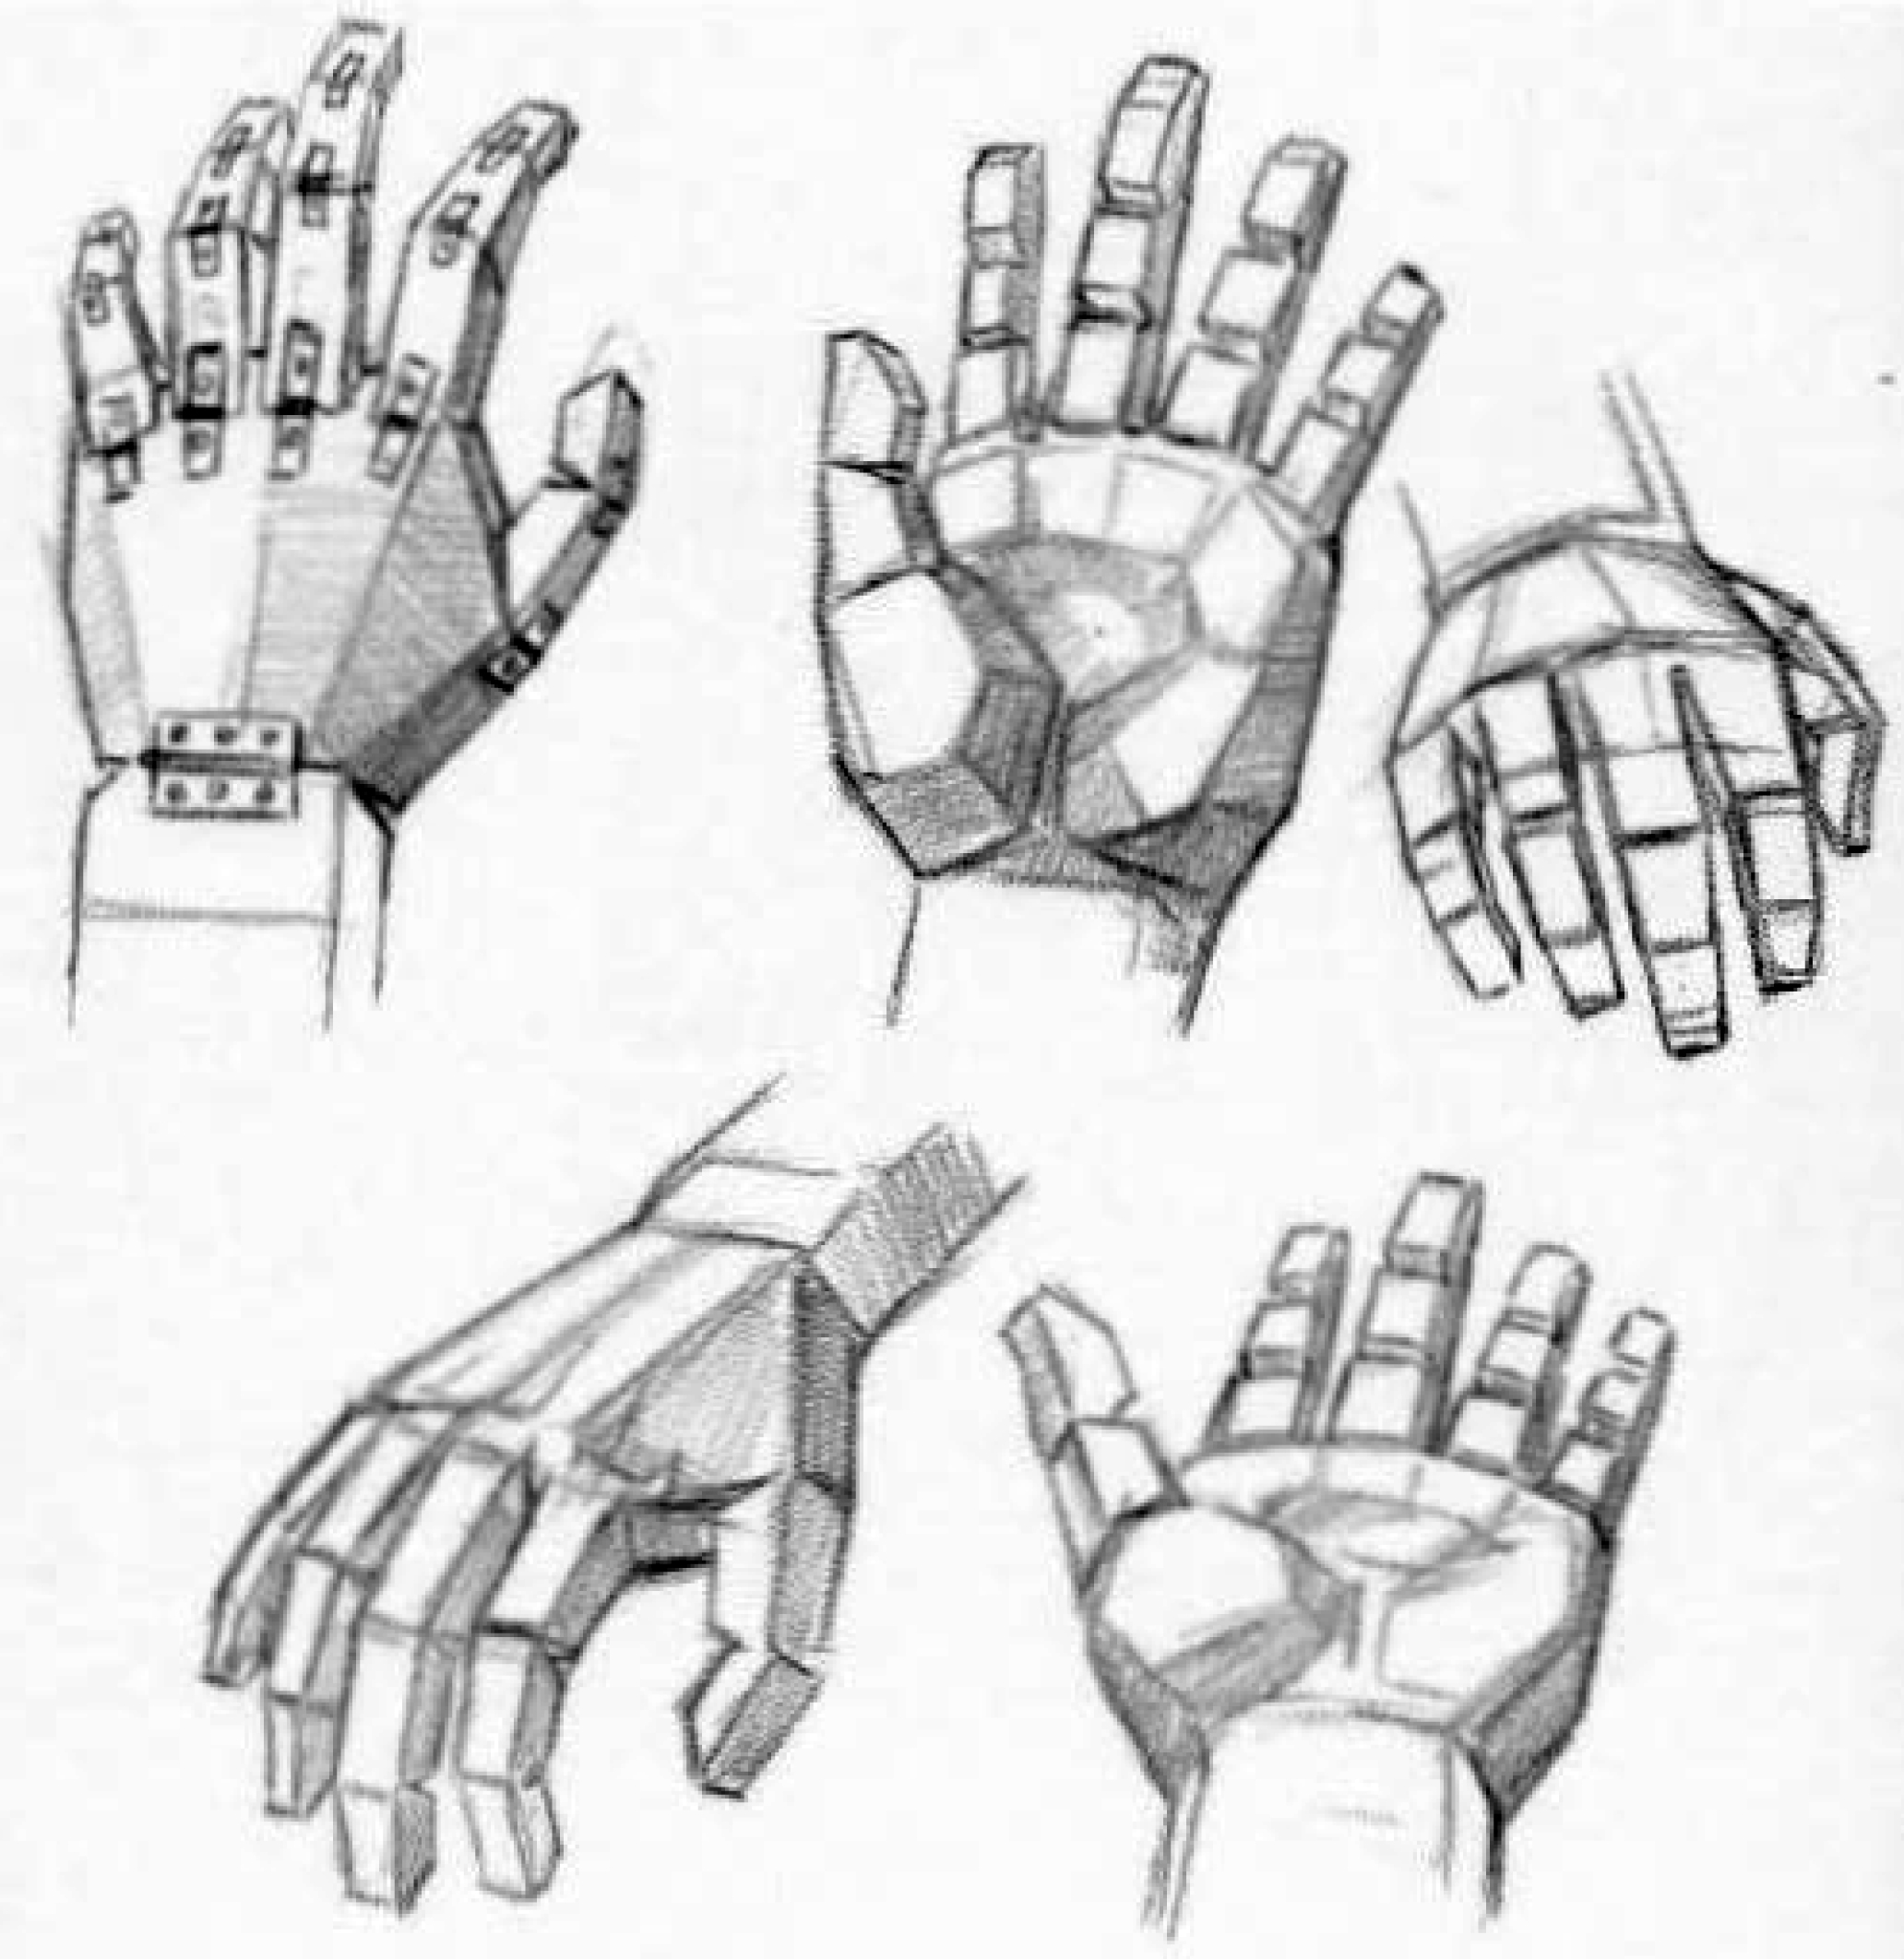 drawing hands by using basic shapes and blocks